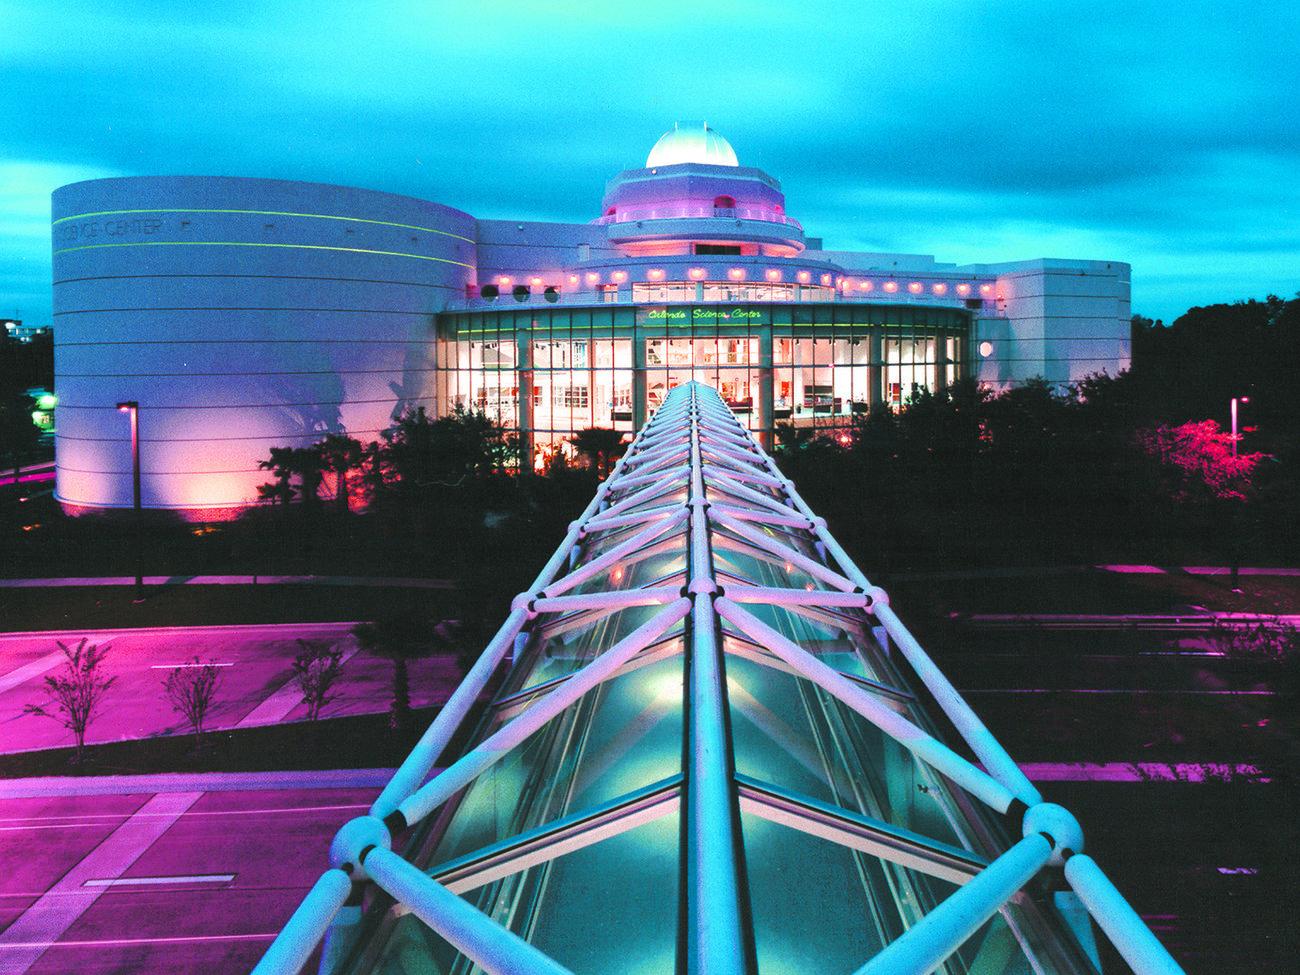 Orlando Science Center Museum in Orlando